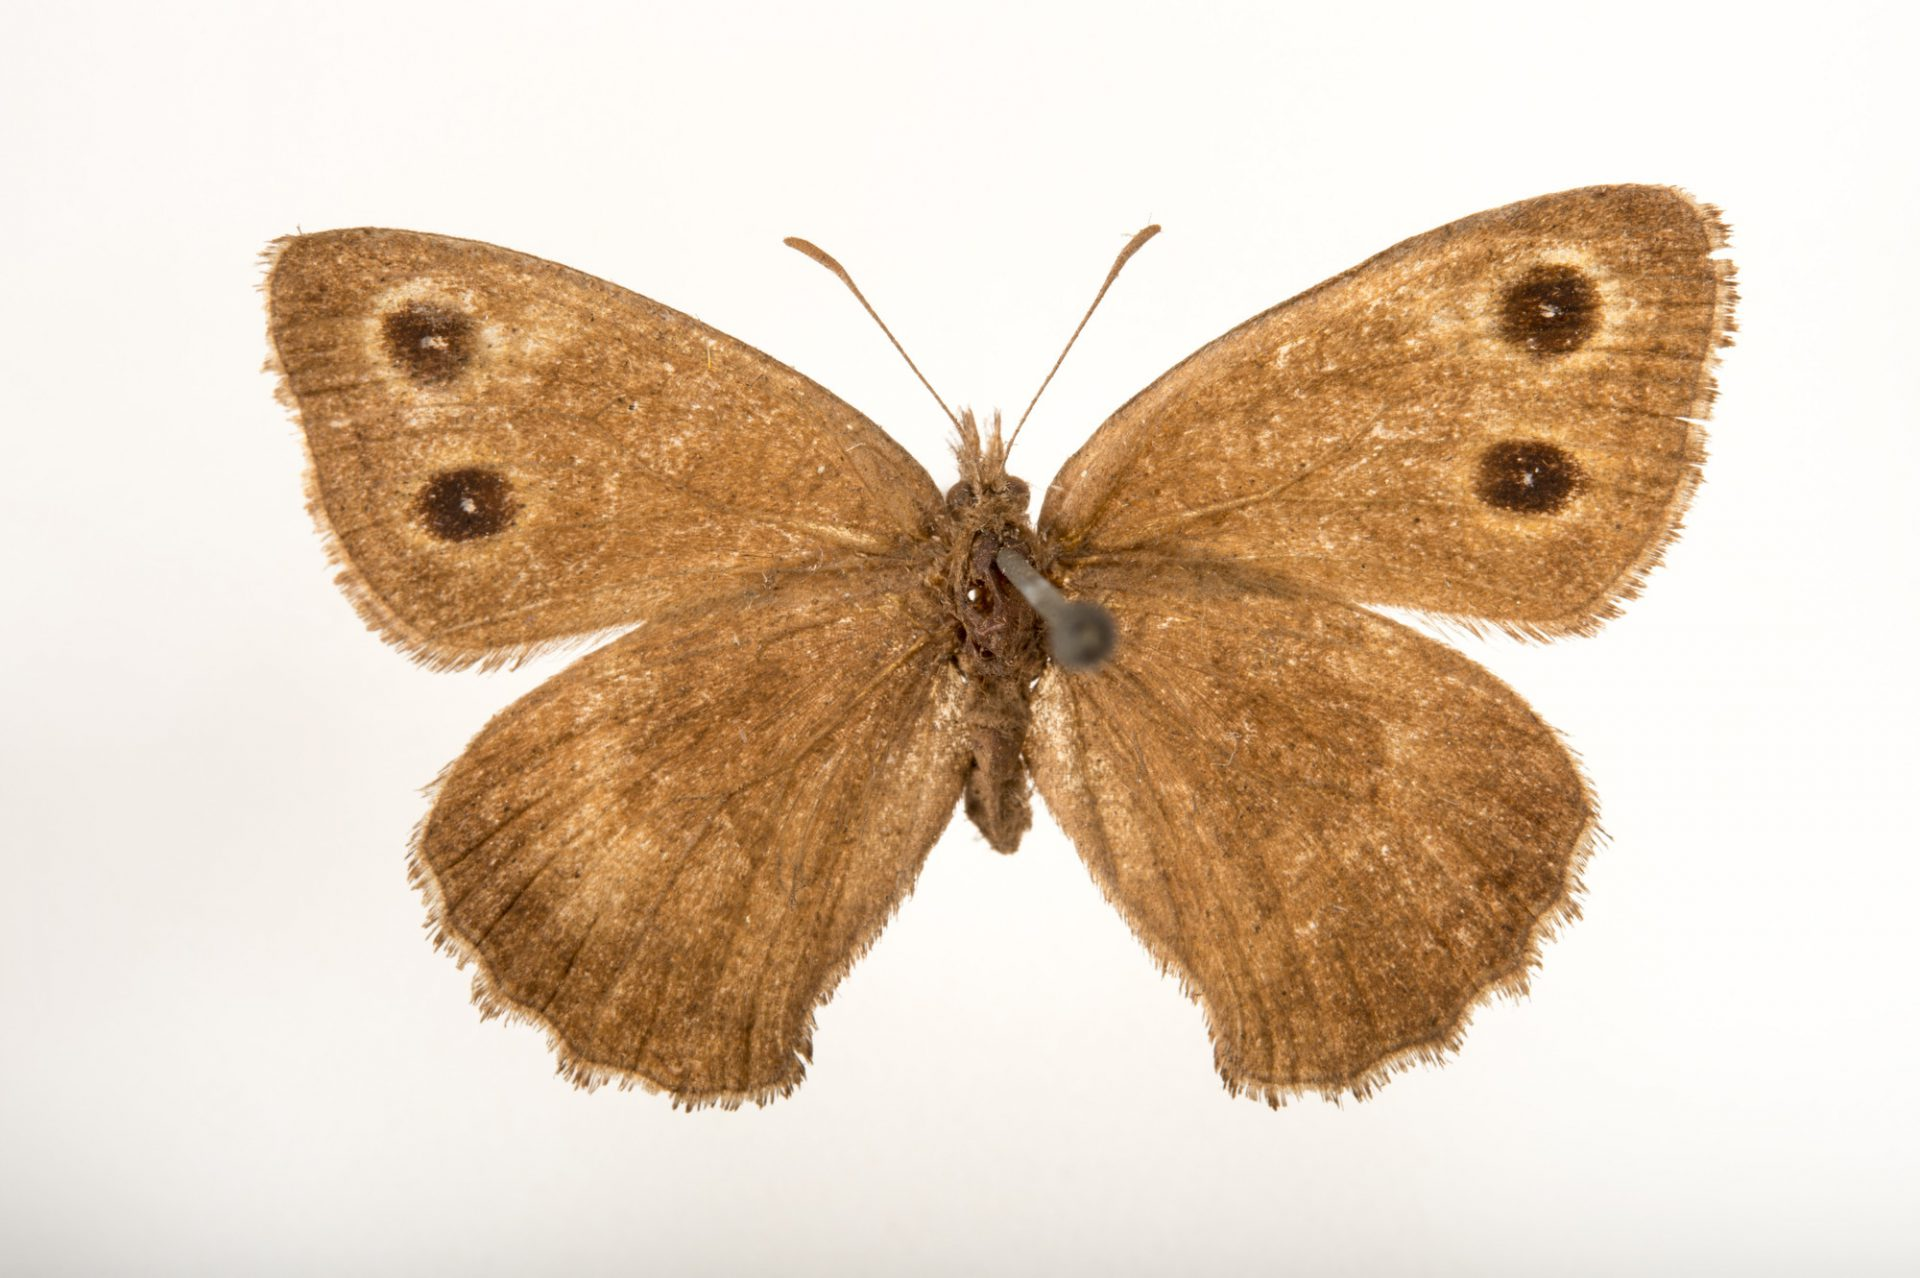 Picture of an extinct Sthenele wood nymph (mounted on a pin) (Cercyonis sthenele sthenele) at the McGuire Center for Lepidoptera and Biodiversity.